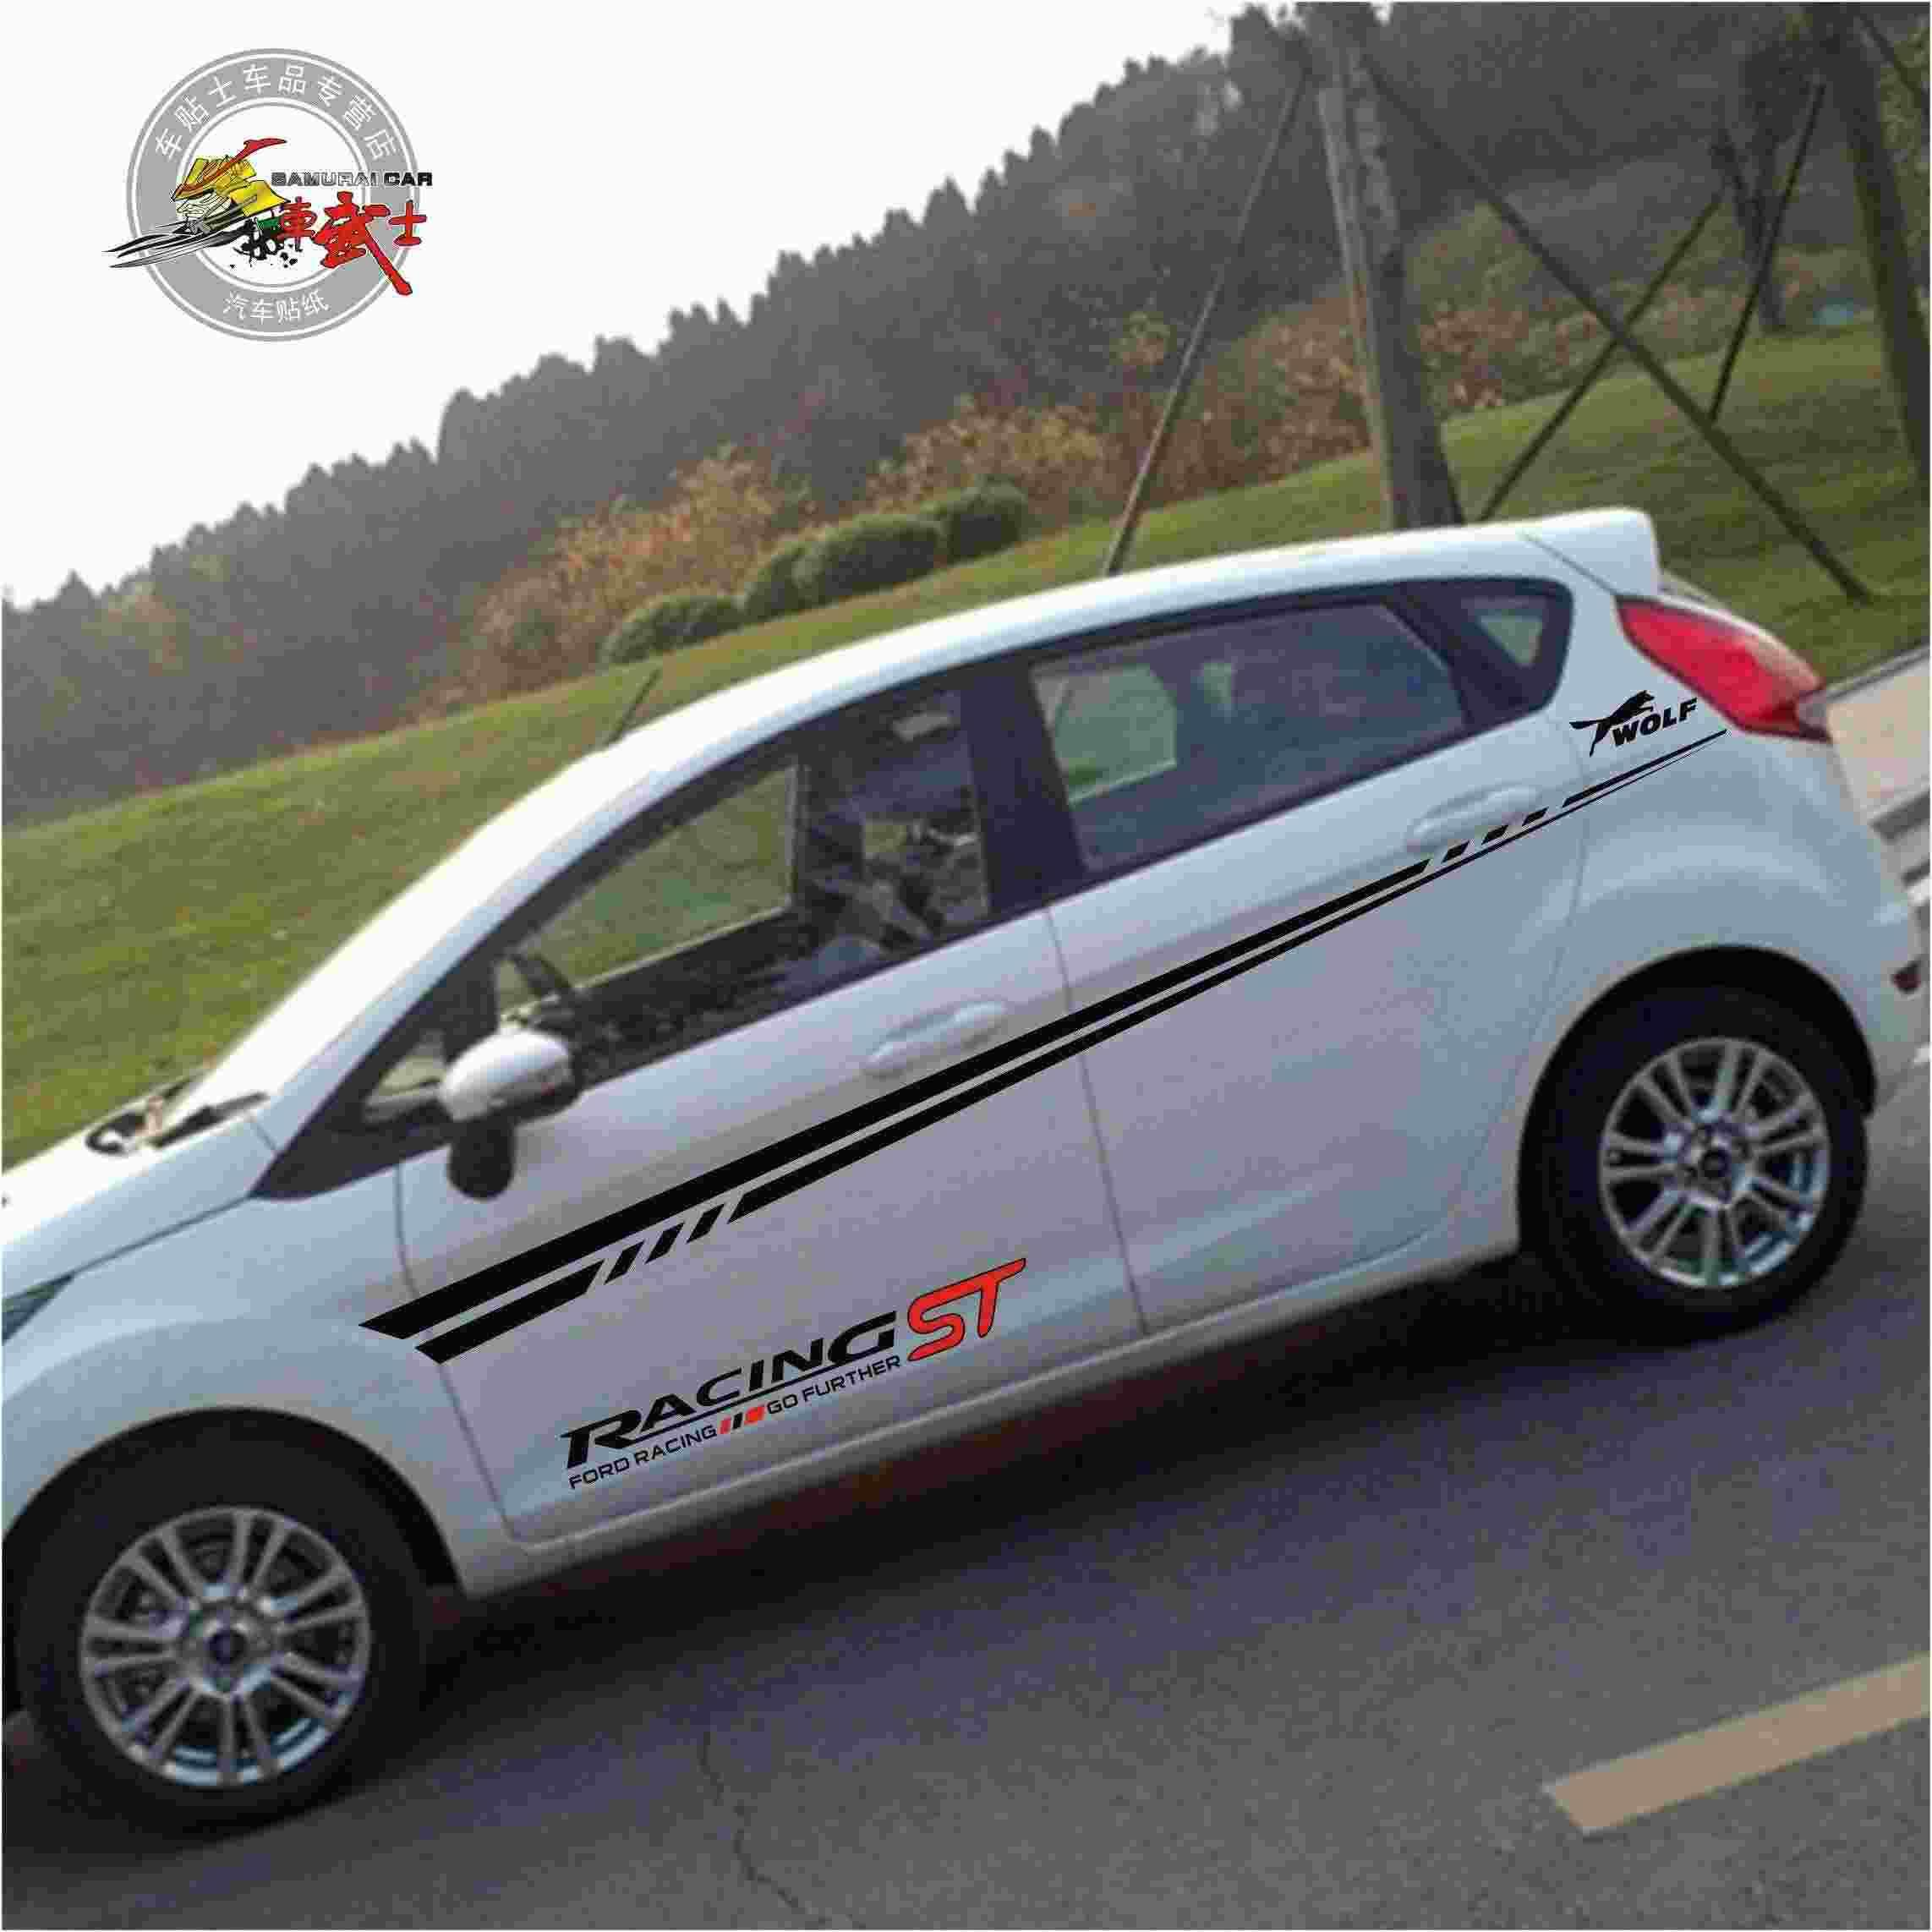 Sticker design for car online - Best St 11 Ford Fiesta Car Stickers Cheap Kk Materials Imported Black Red Full Car Stickers Dodge Car Stickers